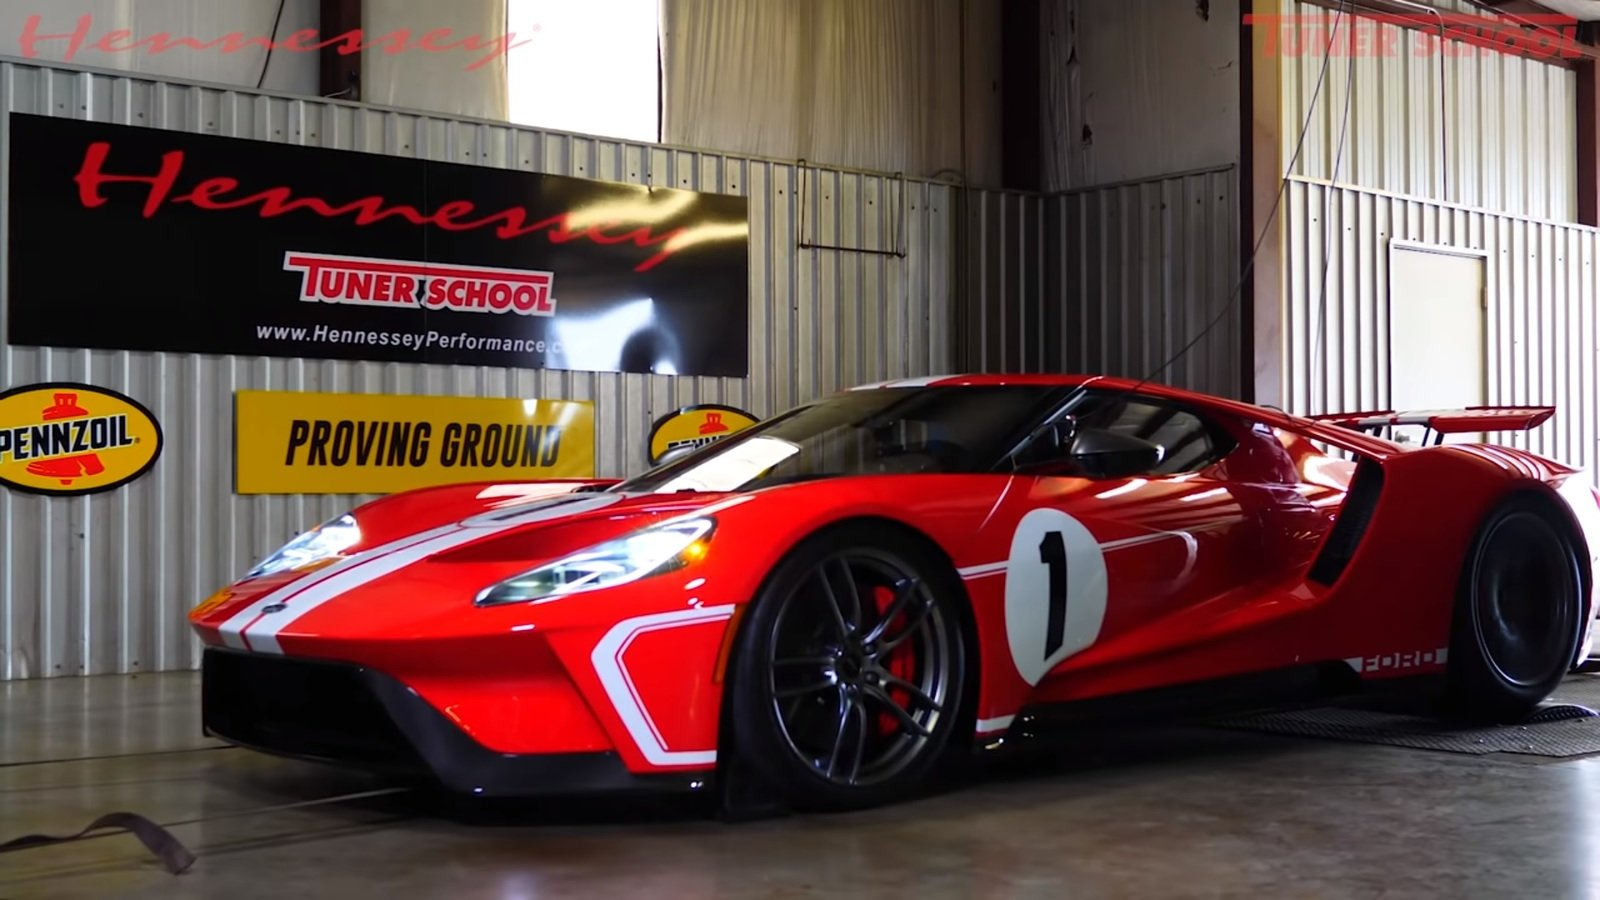 gt ford hennessey dyno heritage edition performance paces put through mustang speed cars topspeed